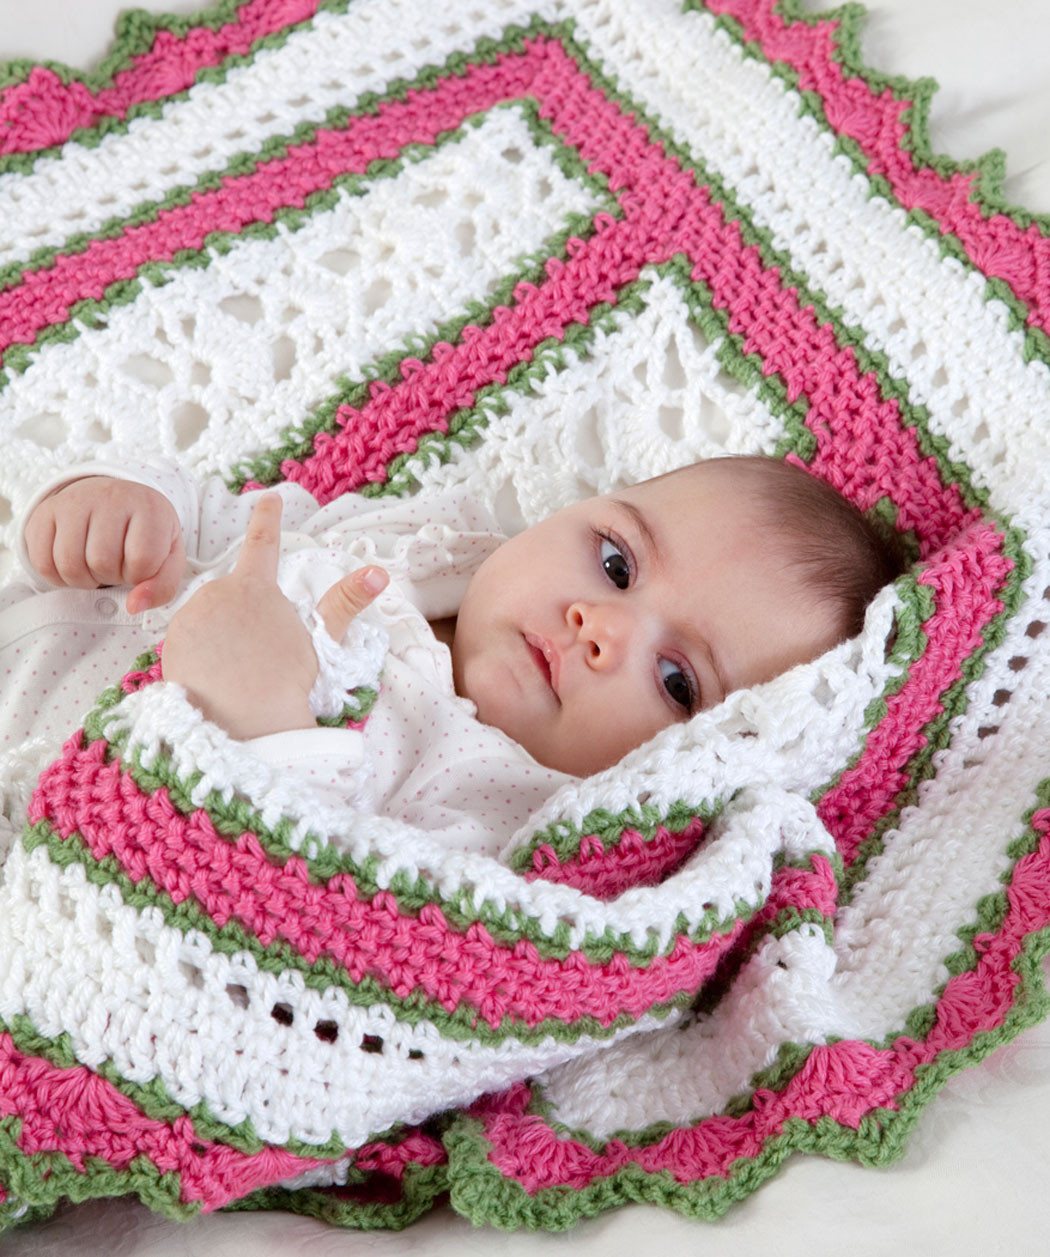 Baby Boy Crochet Blanket Patterns Best Of 10 Beautiful Baby Blanket Free Patterns Of Baby Boy Crochet Blanket Patterns Beautiful Marvelous Monkey Blankets Free Crochet Patterns